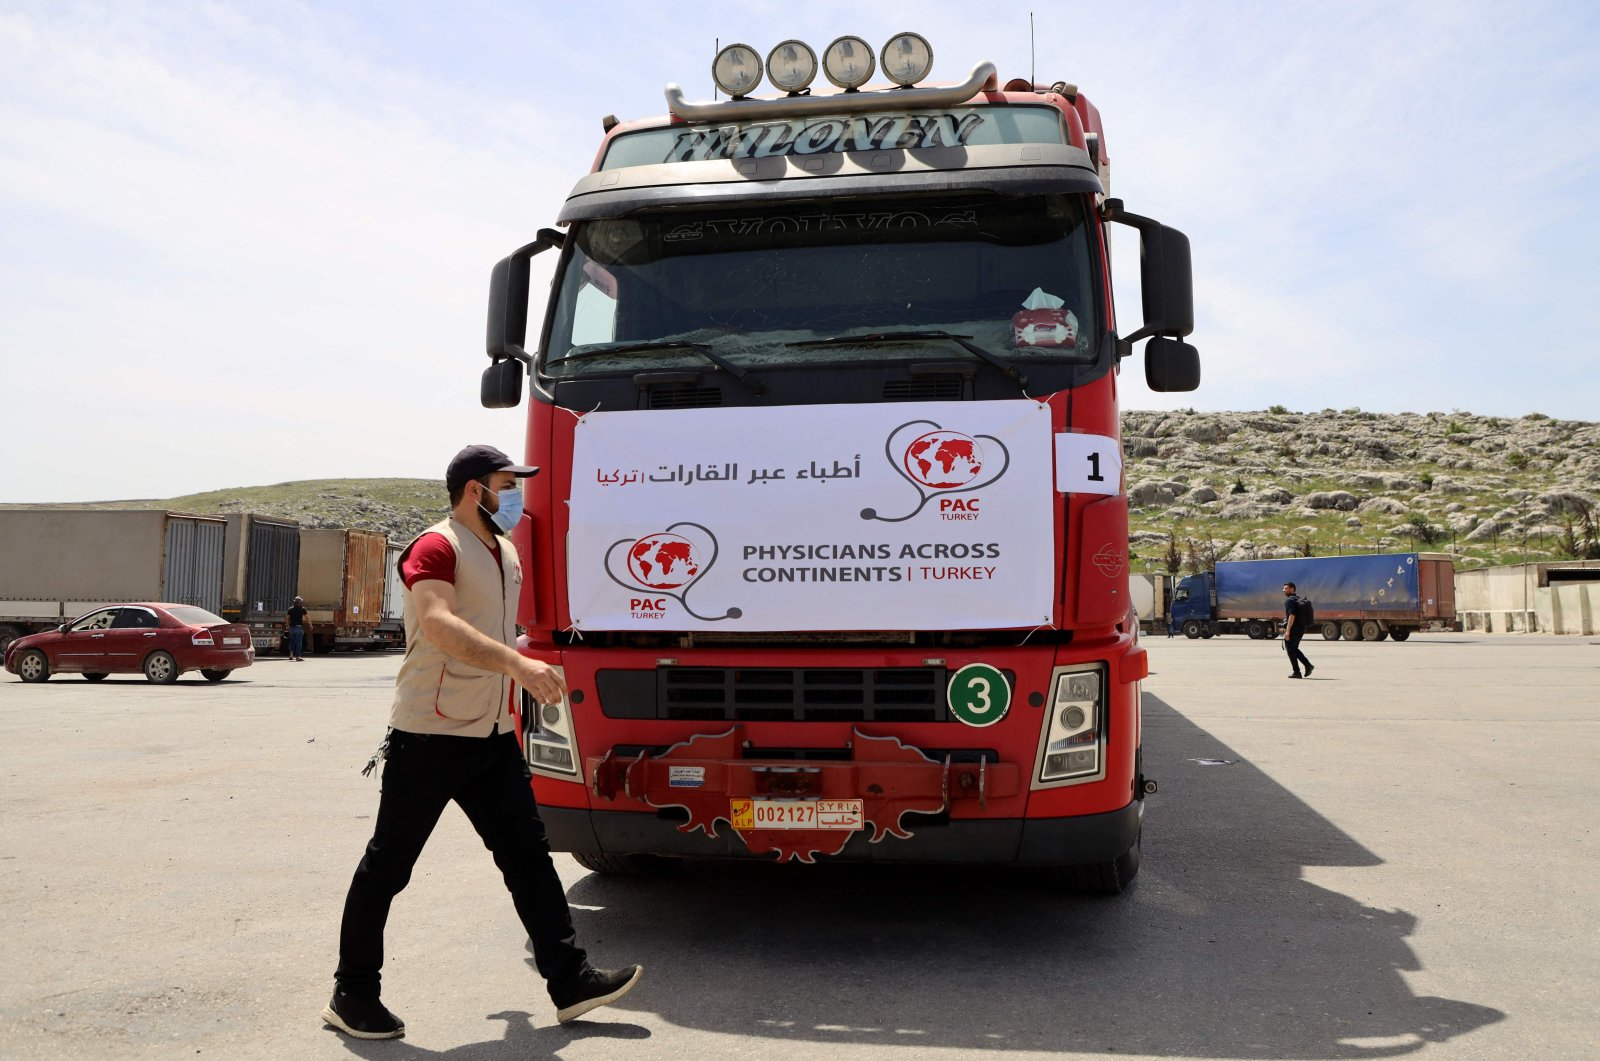 A truck carrying the first batch of AstraZeneca COVID-19 vaccines arrives at the Bab al-Hawa border crossing between Syria and Turkey in Syria's northwestern Idlib, April 21, 2021. (AFP Photo)